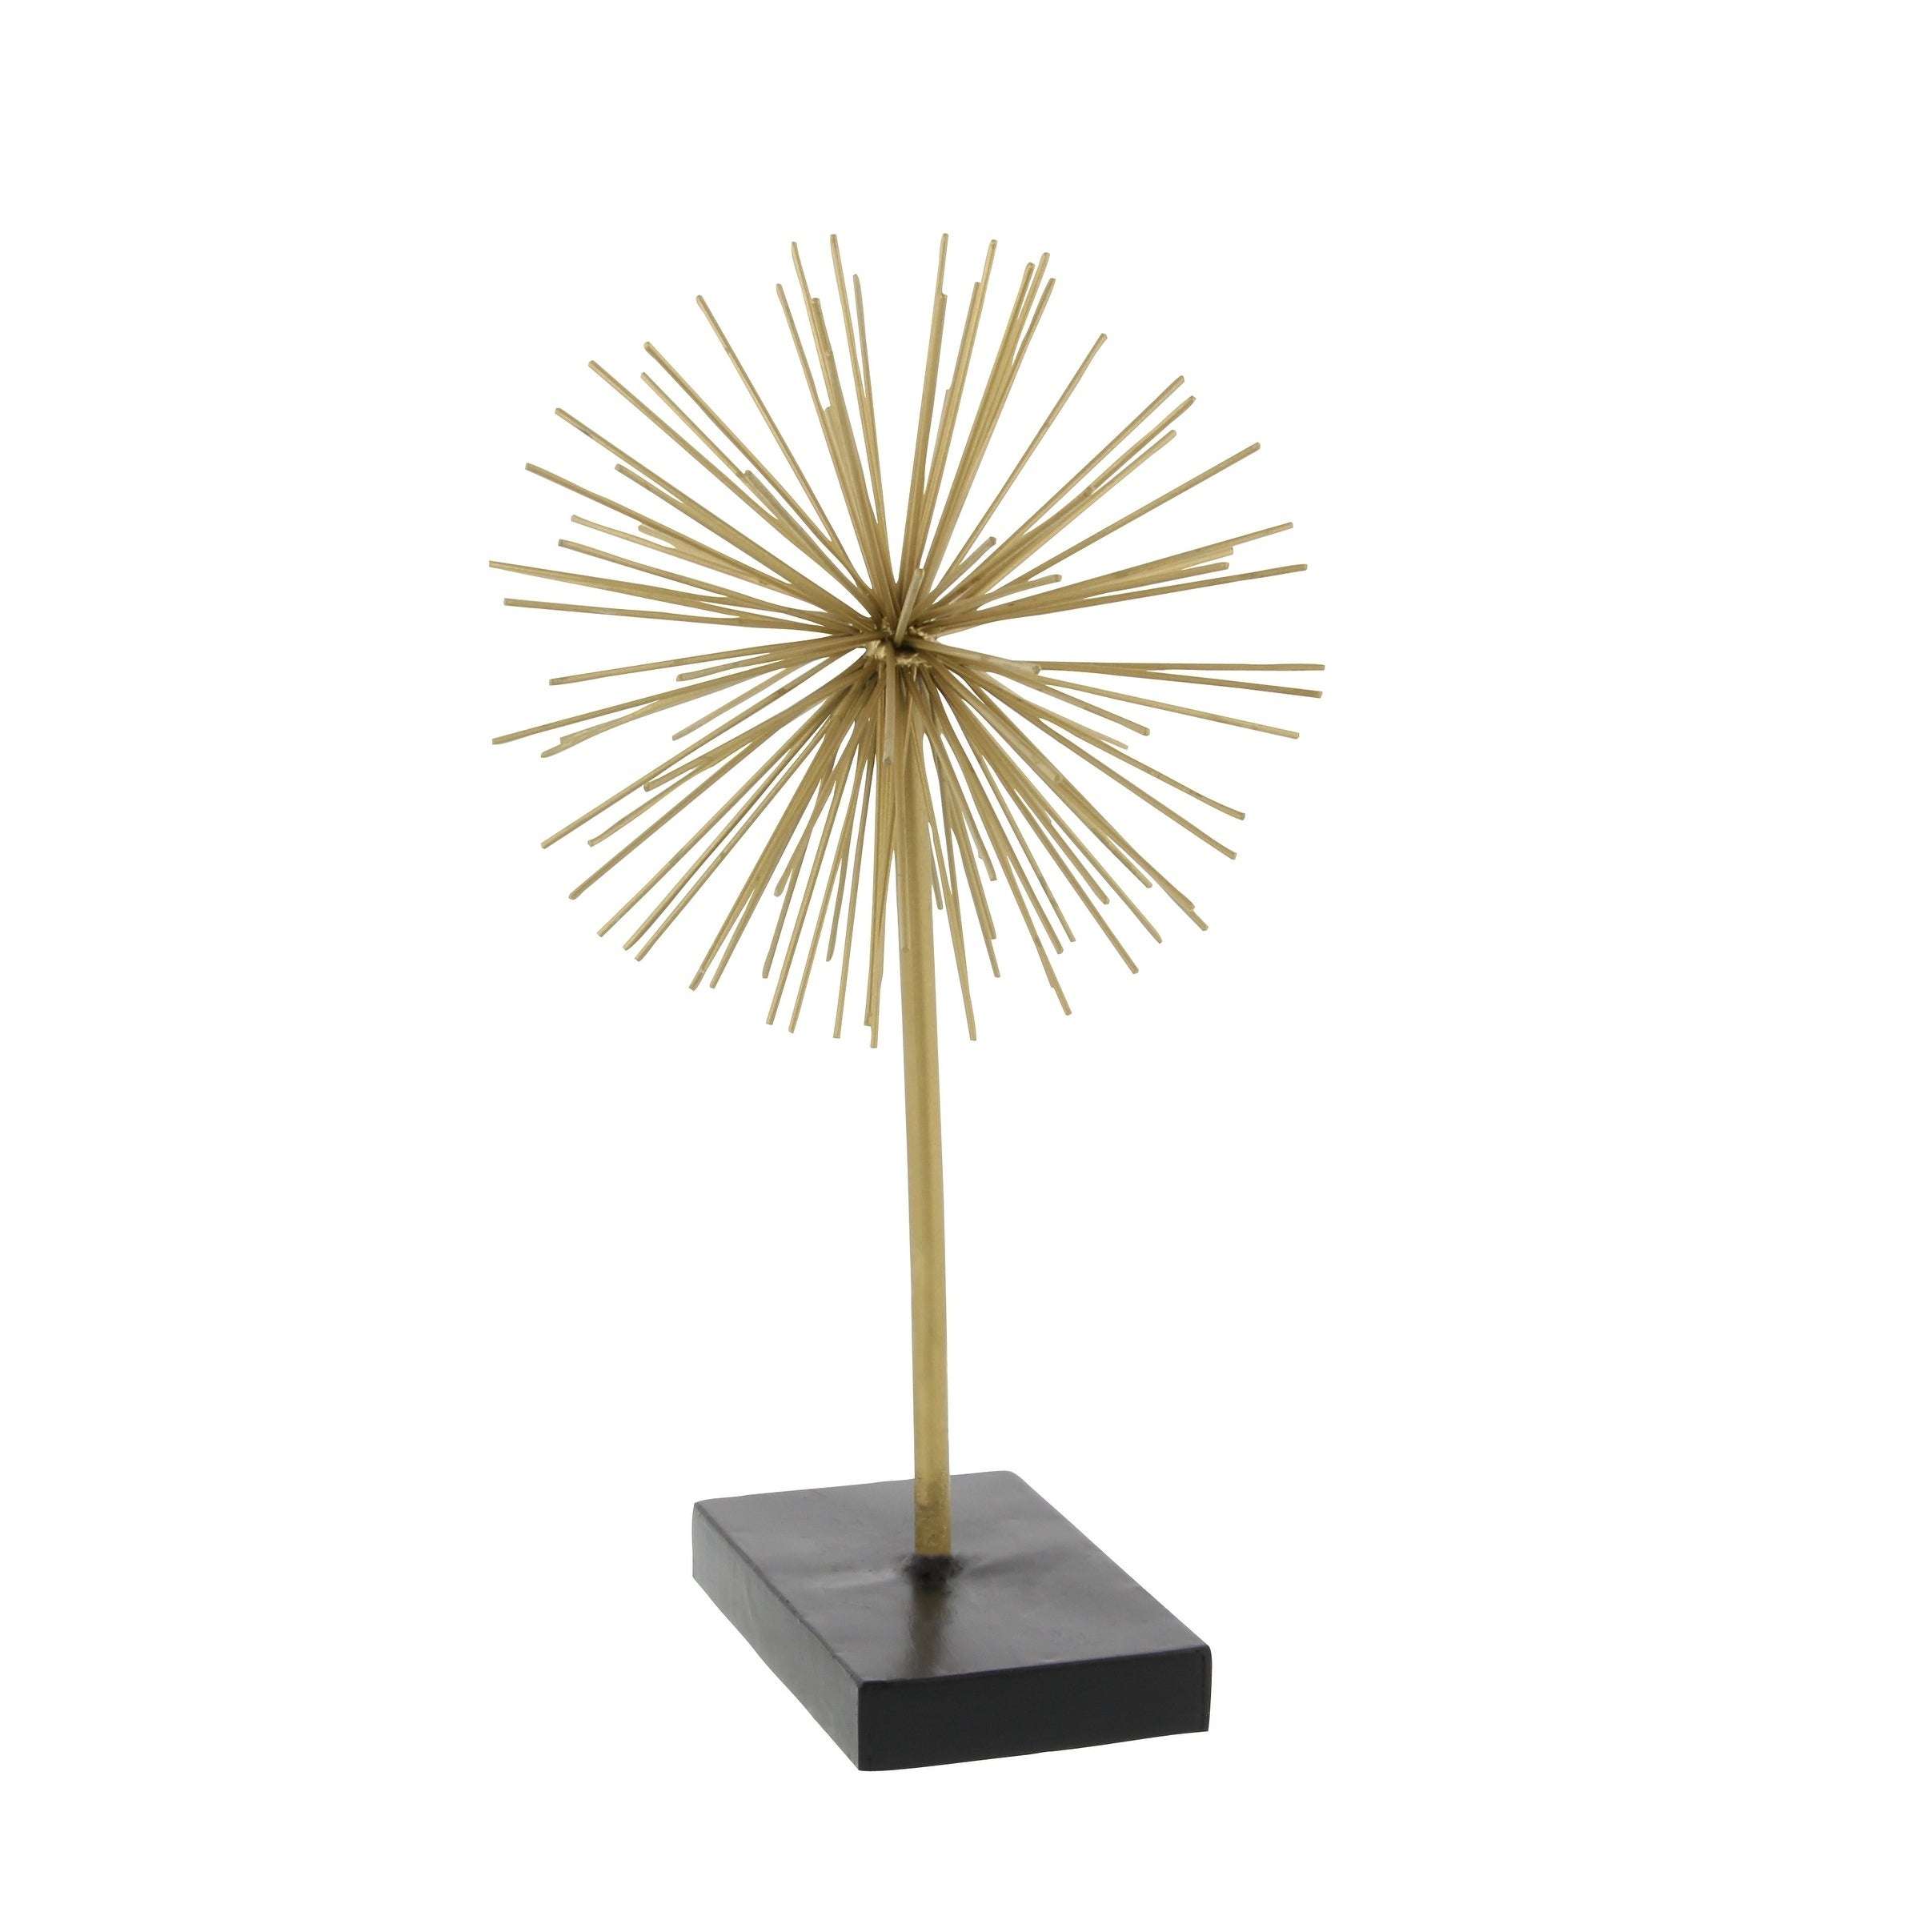 Set Of 3 Contemporary 6, 9, And 11 Inch Gold Tin Starburst Sculptures Throughout Latest Shop Tall Contemporary Style 3D Round Gold Metal Starburst (Gallery 4 of 20)